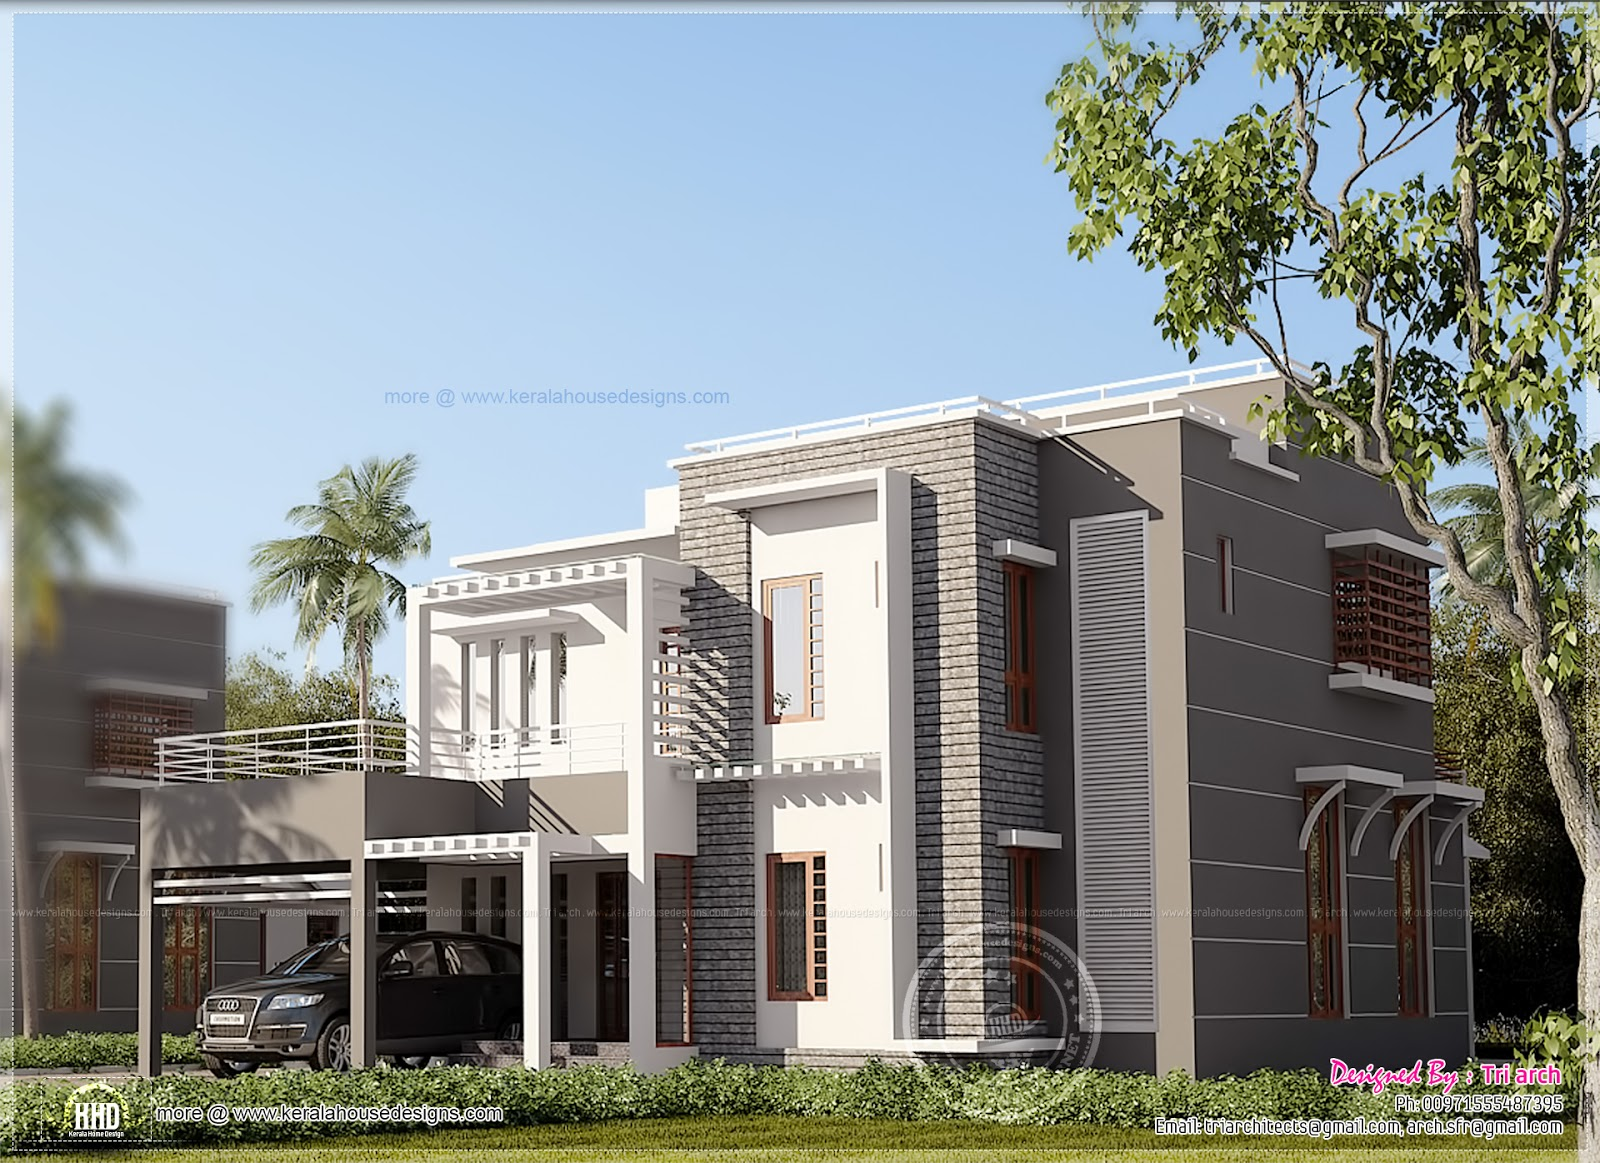 Contemporary home design in kerala kerala home design for Kerala home designs contemporary